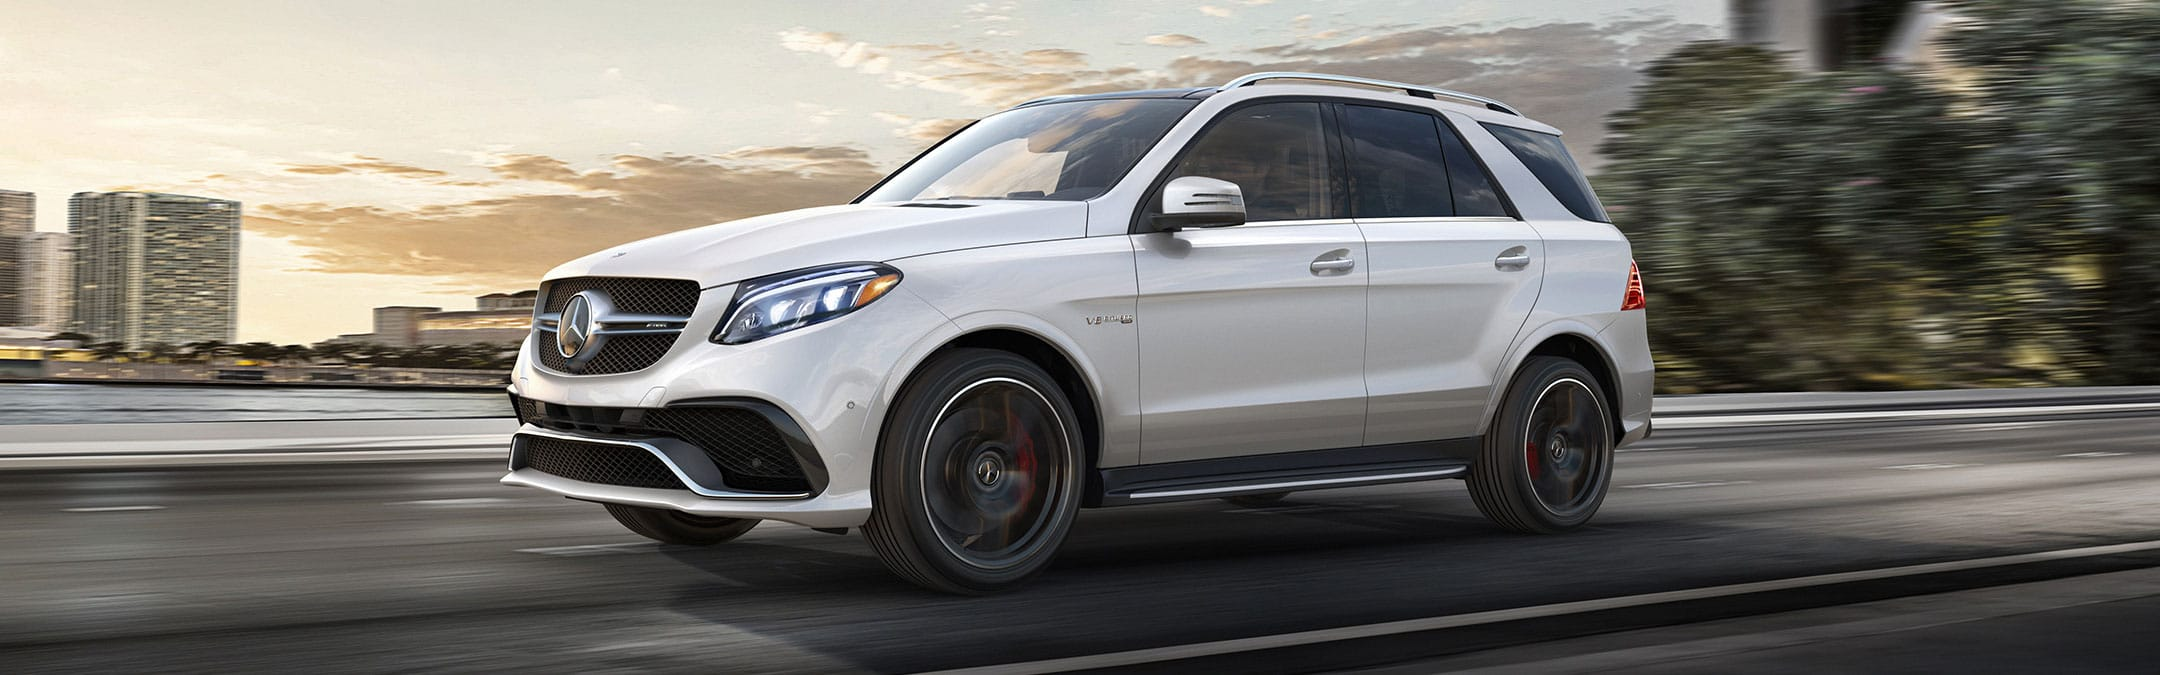 2019 Mercedes-AMG GLE SUV Performance